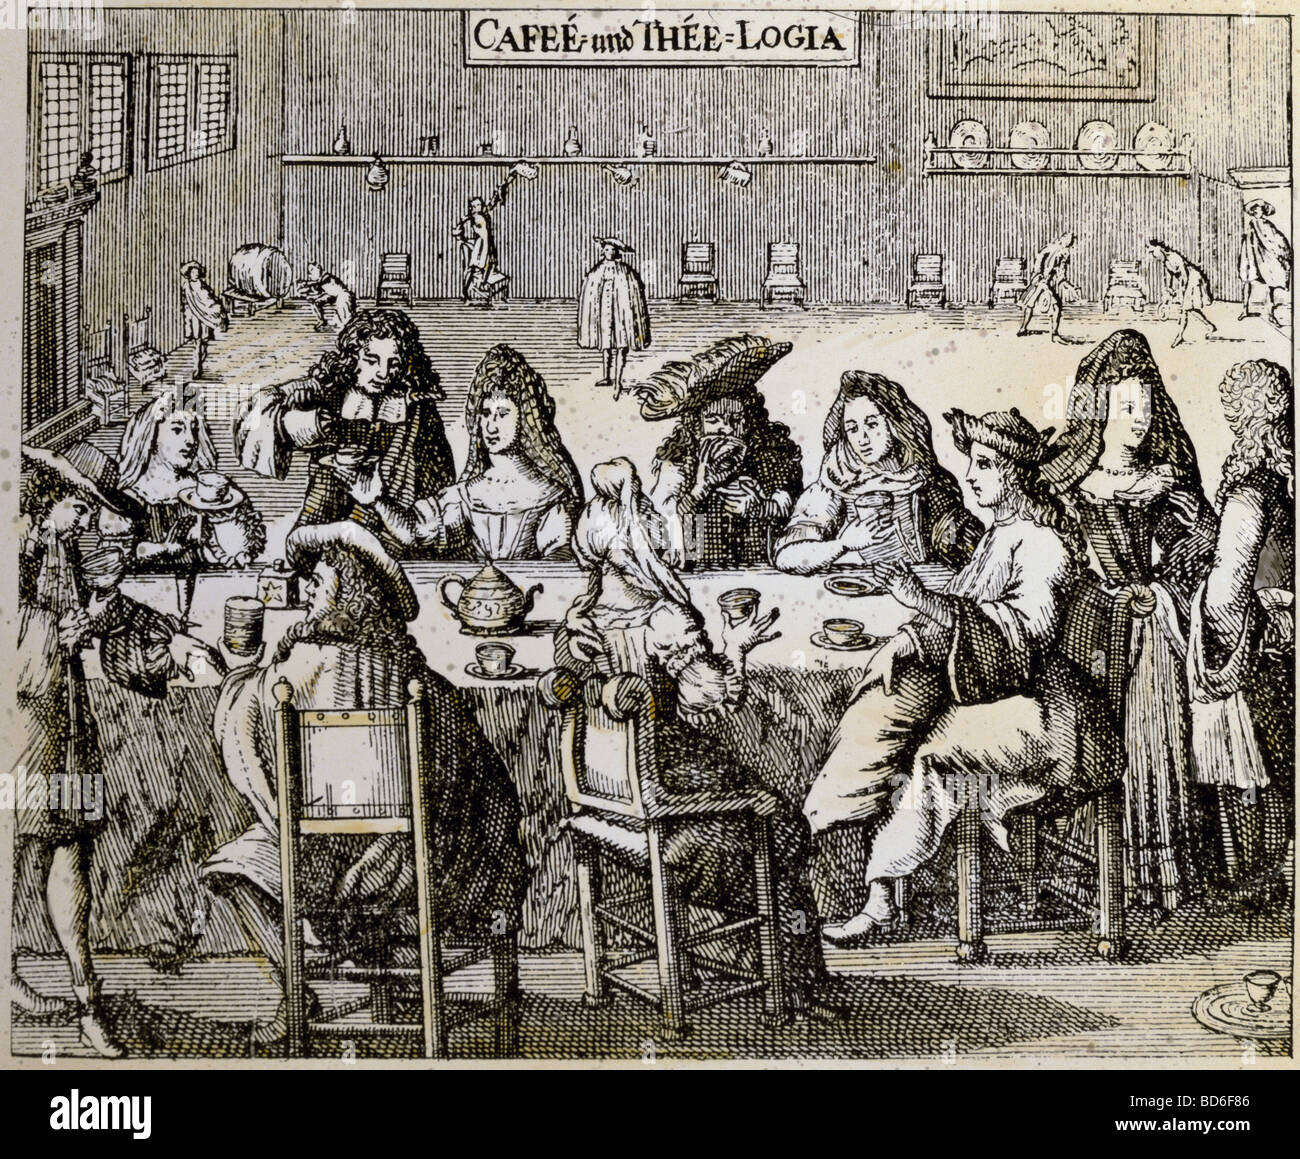 gastronomy, cafe, 'Cafee und Thee-Logia' (Coffee and tea house), copper engraving, Germany, second half - Stock Image